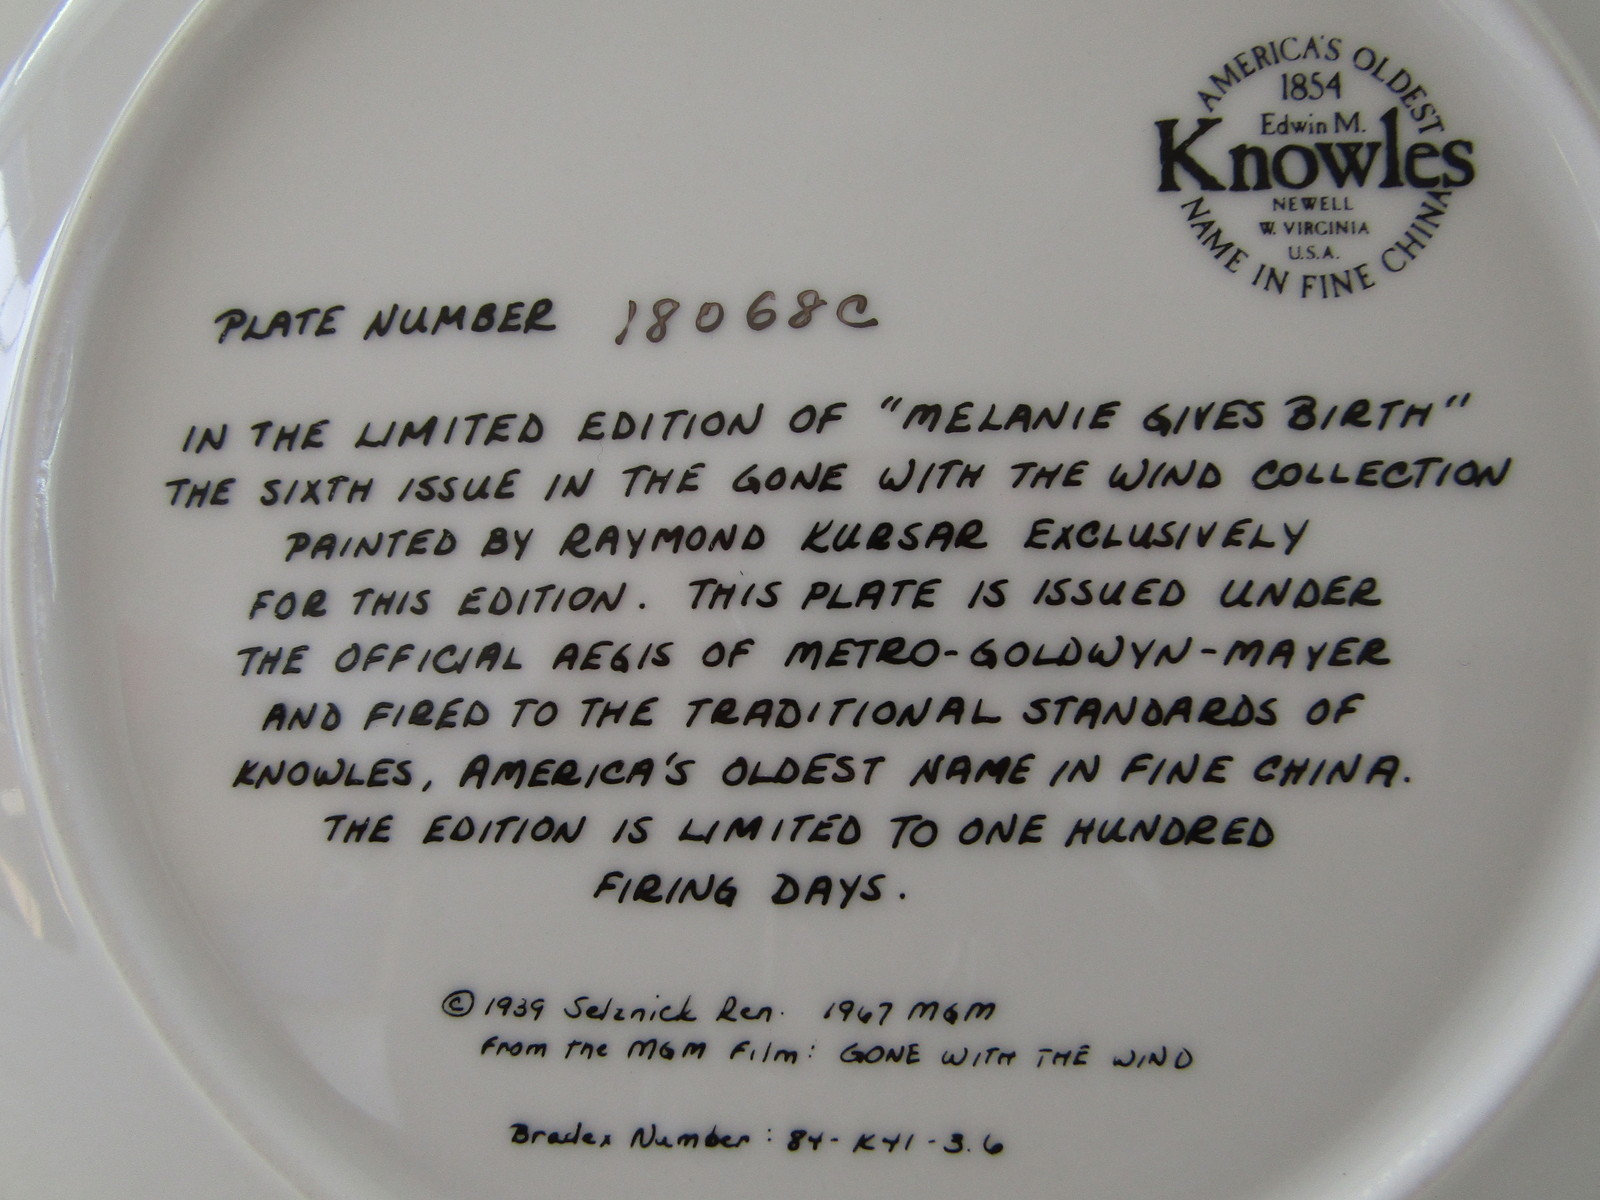 Collector Plate, Gone with the Wind - Melanie Gives Birth, Knowles China